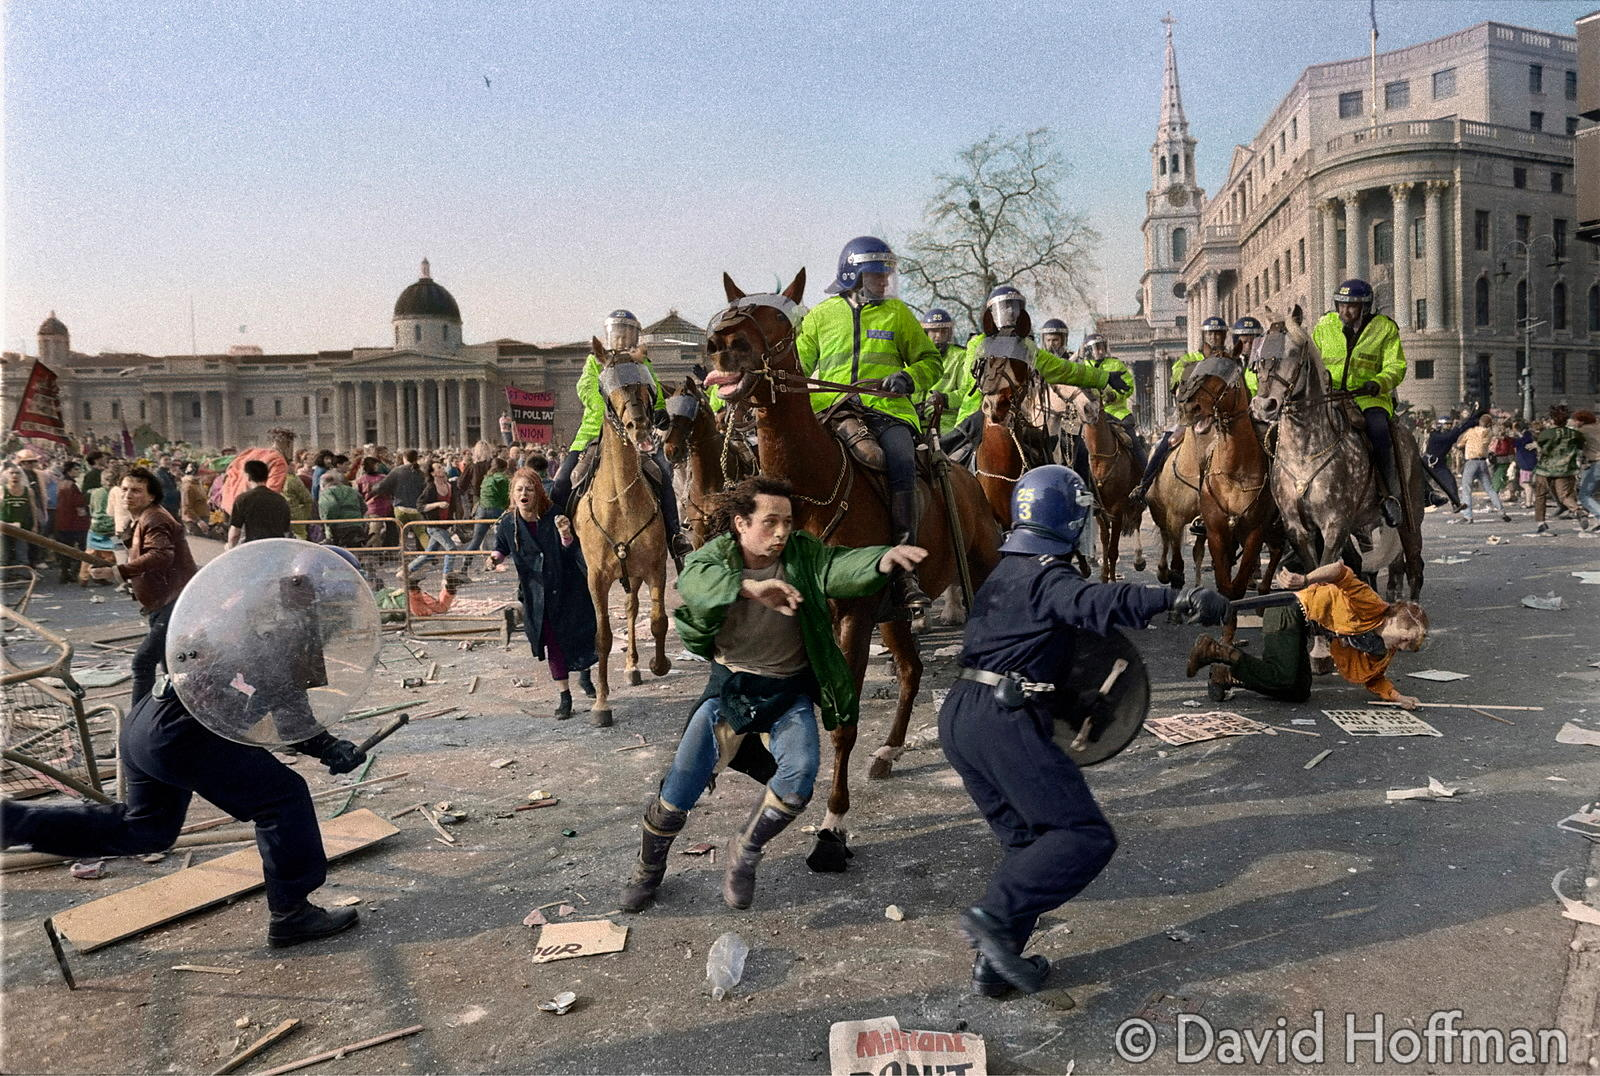 30 YEARS ON. ANTI POLL TAX RIOT IN TRAFALGAR SQUARE, LONDON MARCH 31, 1990.